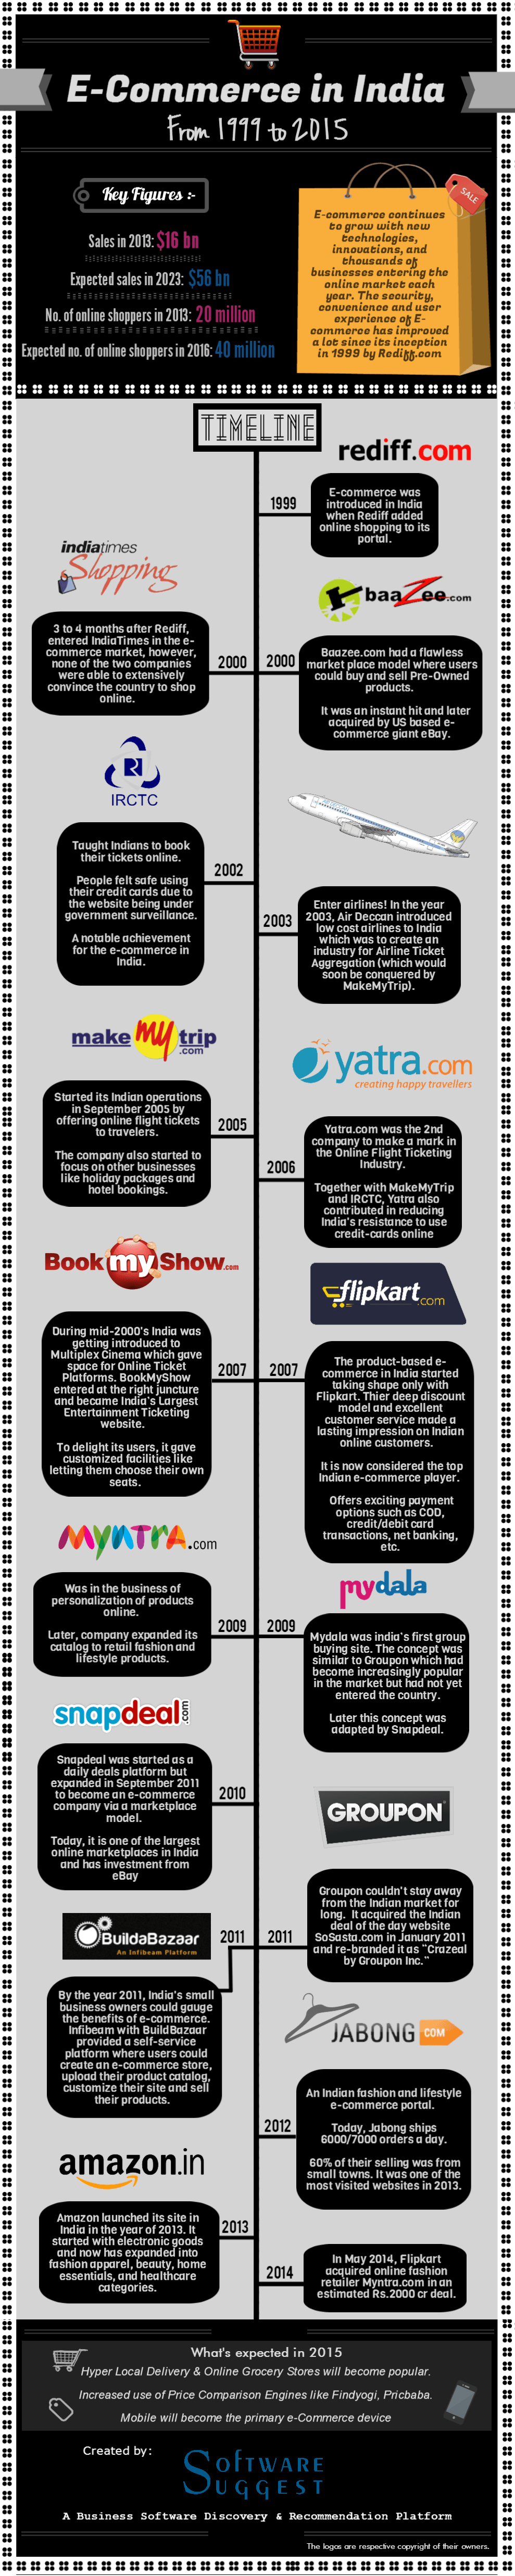 eCommerce-in-india-infographic